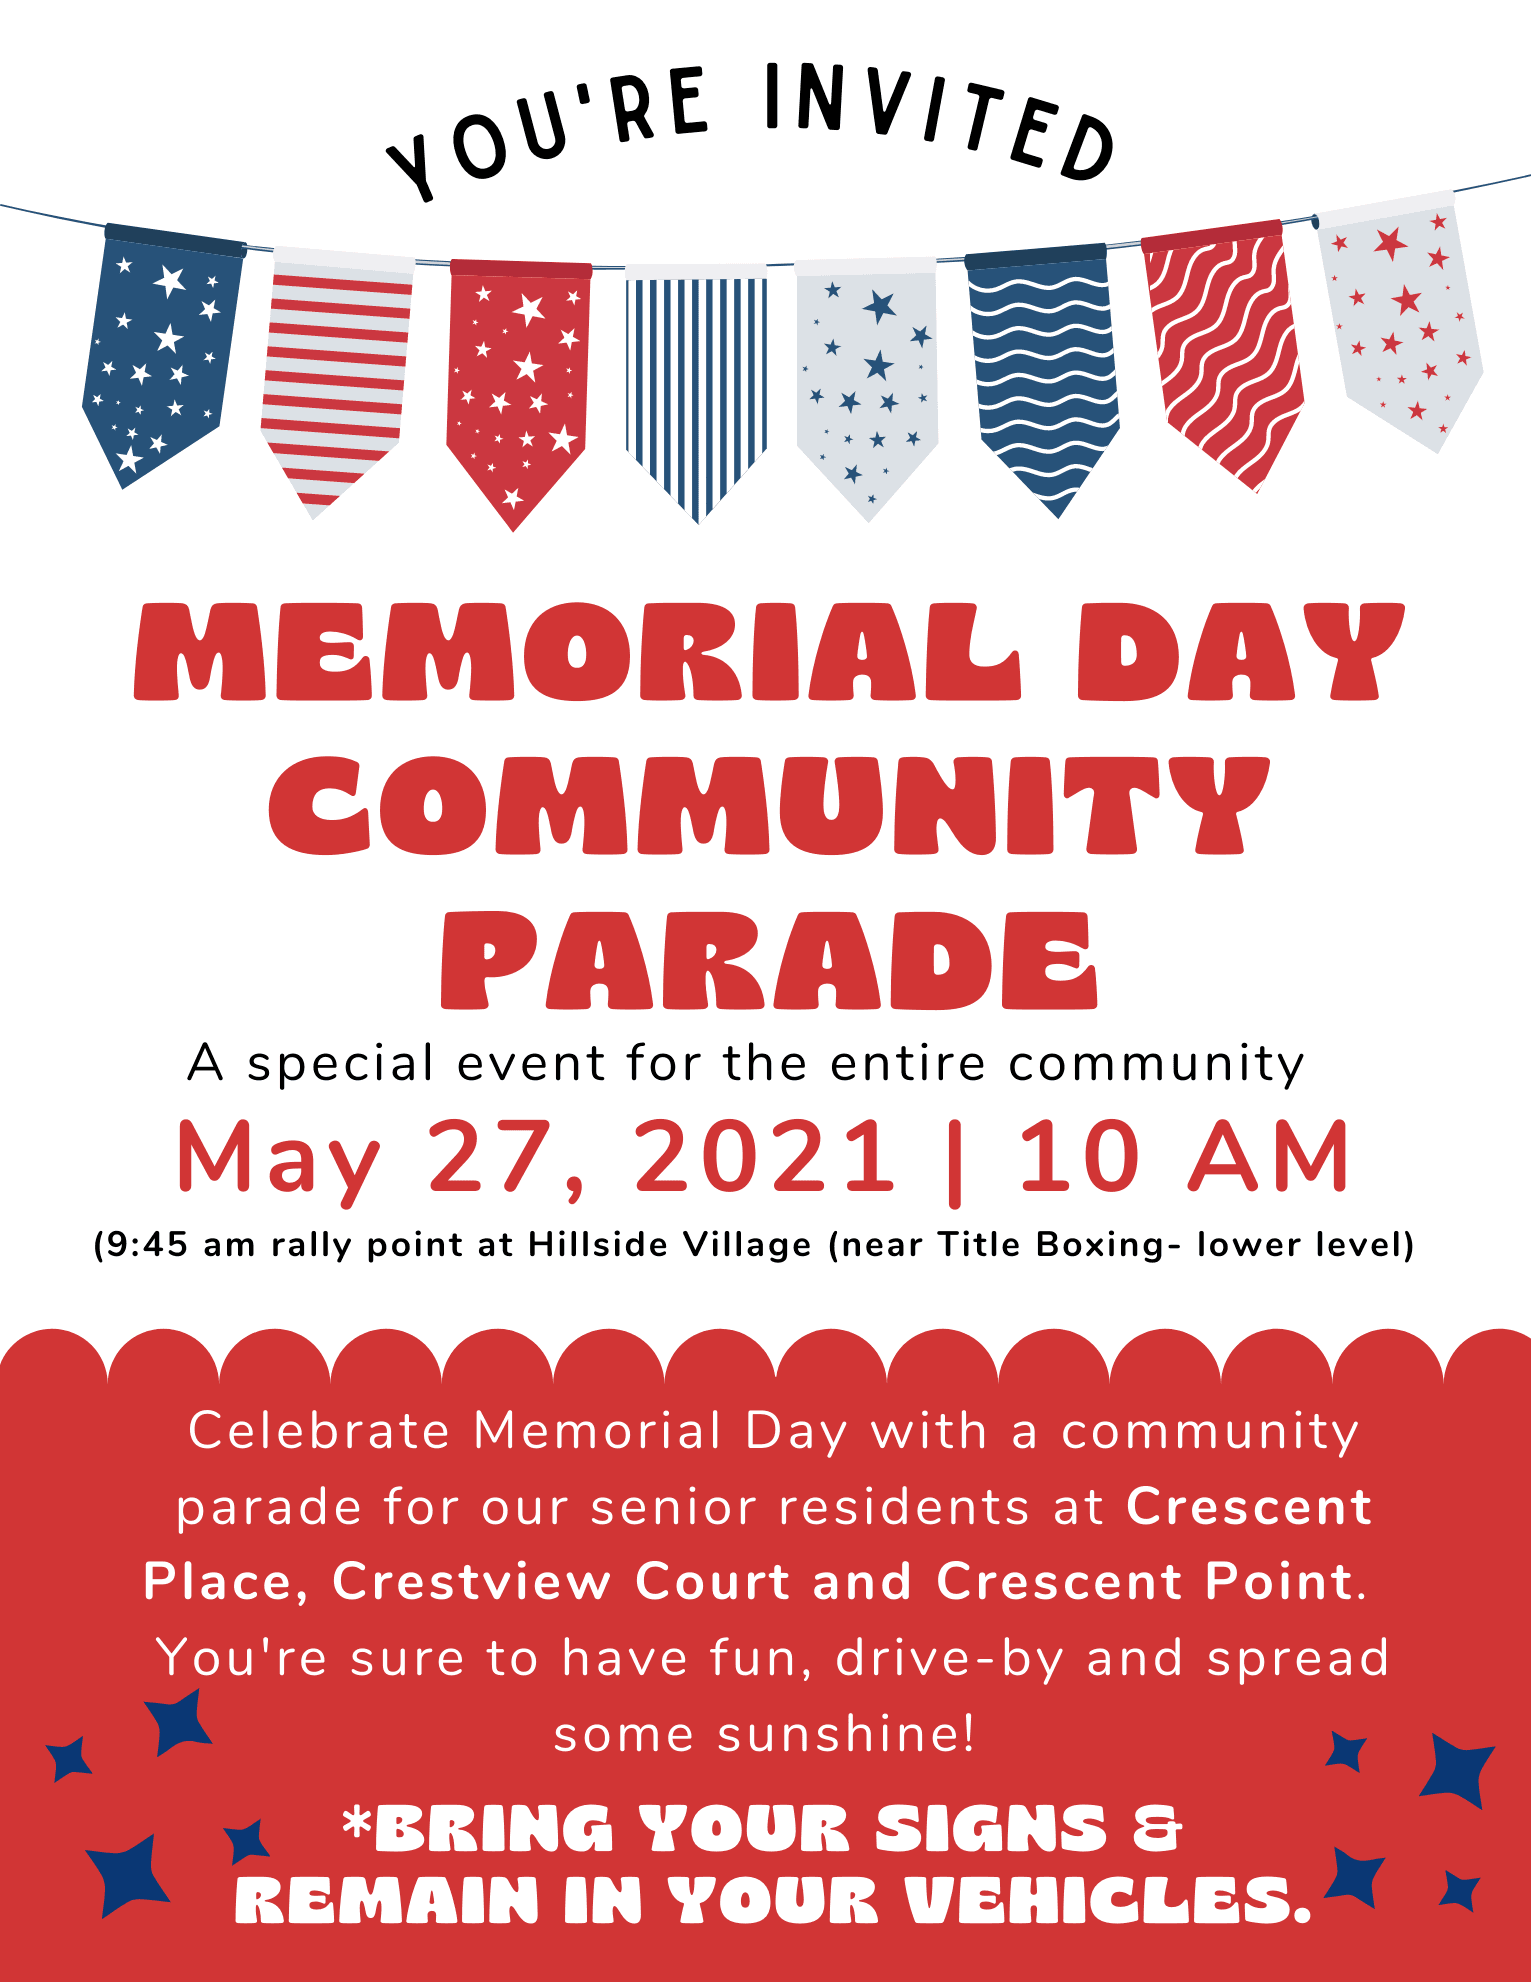 memorial day community parade